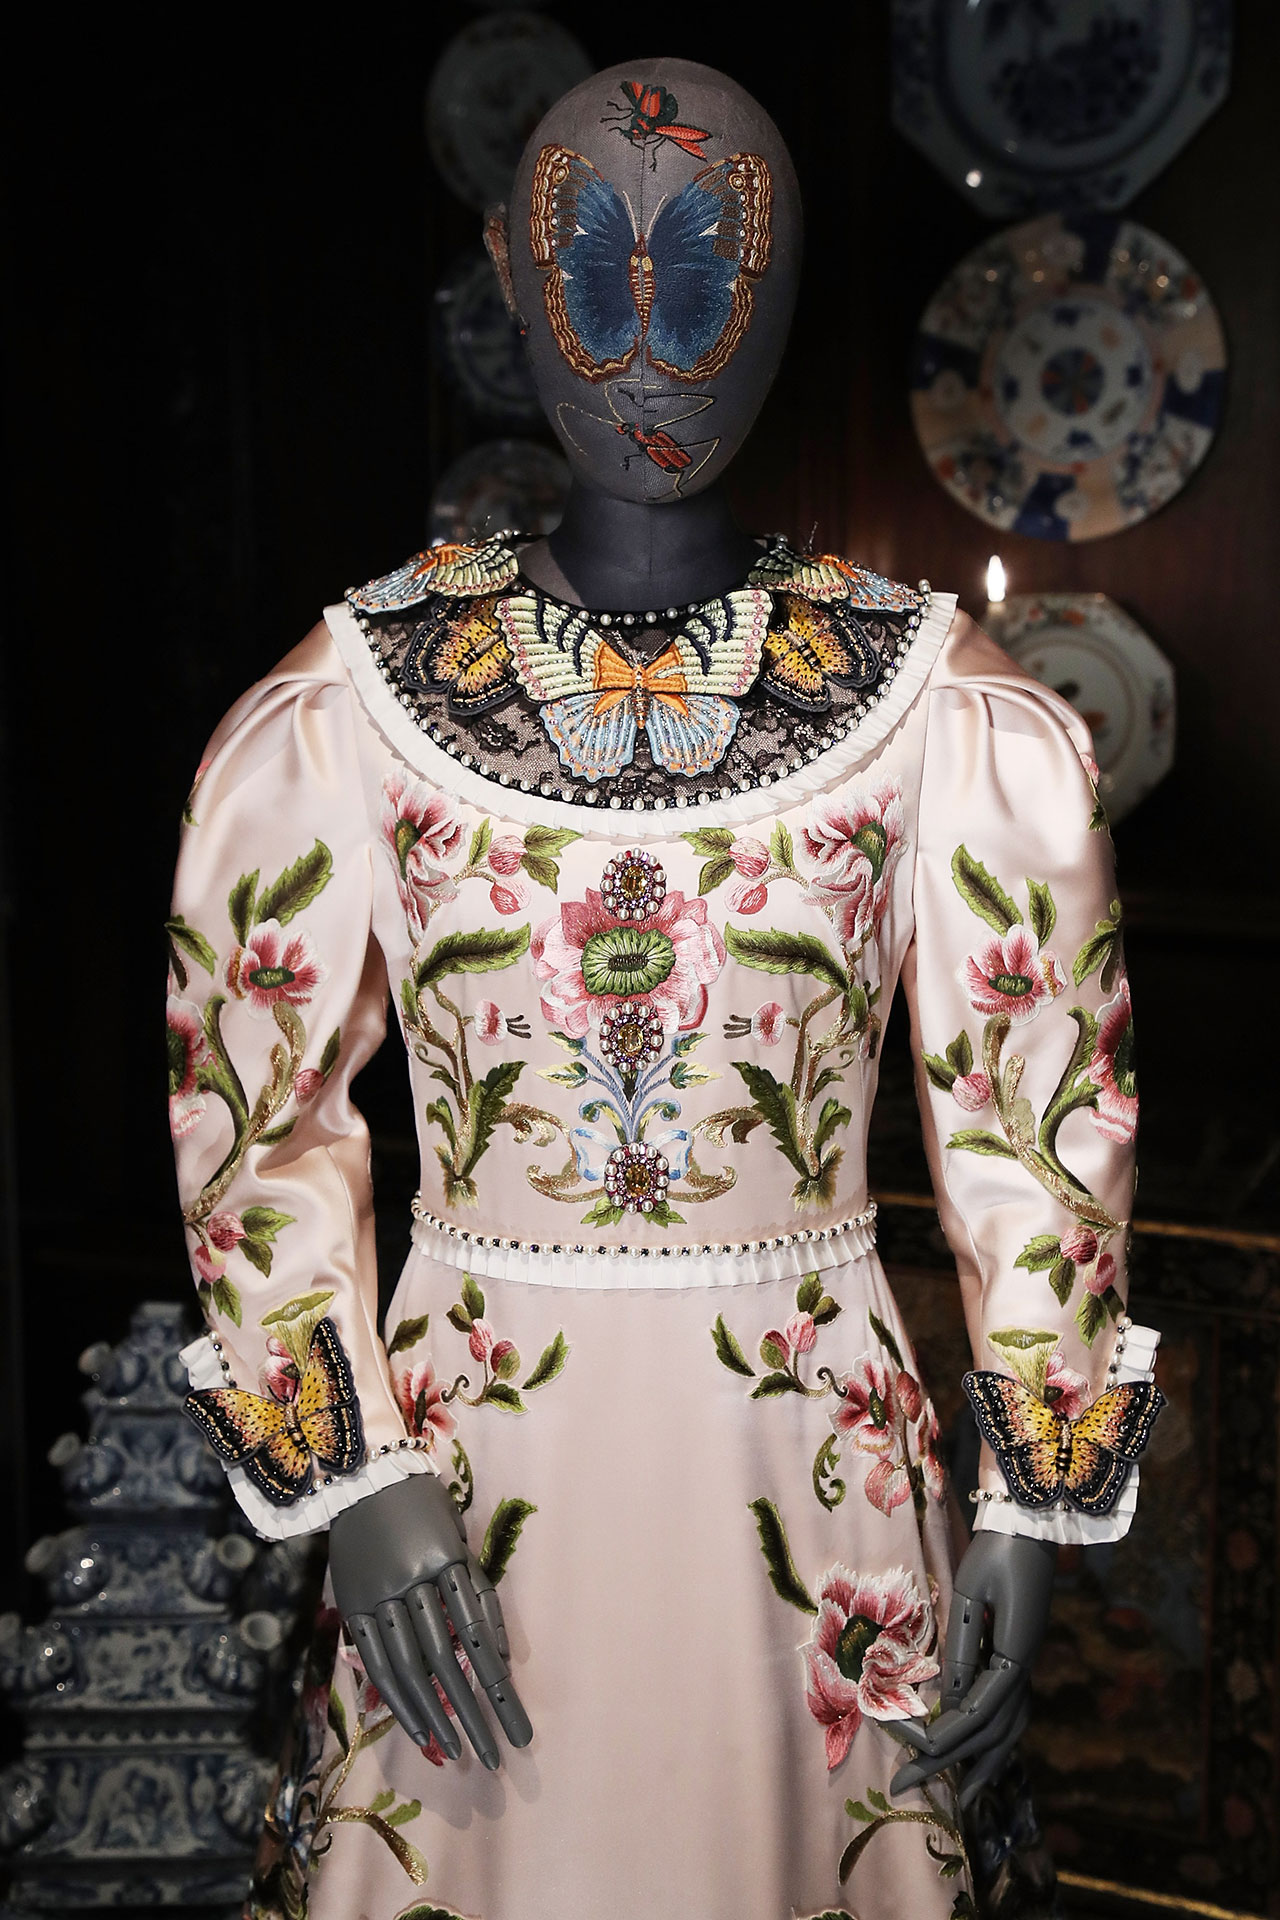 A Gucci dress created by Alessandro Michele for the Duchess of Devonshire. Photo © GUCCI.